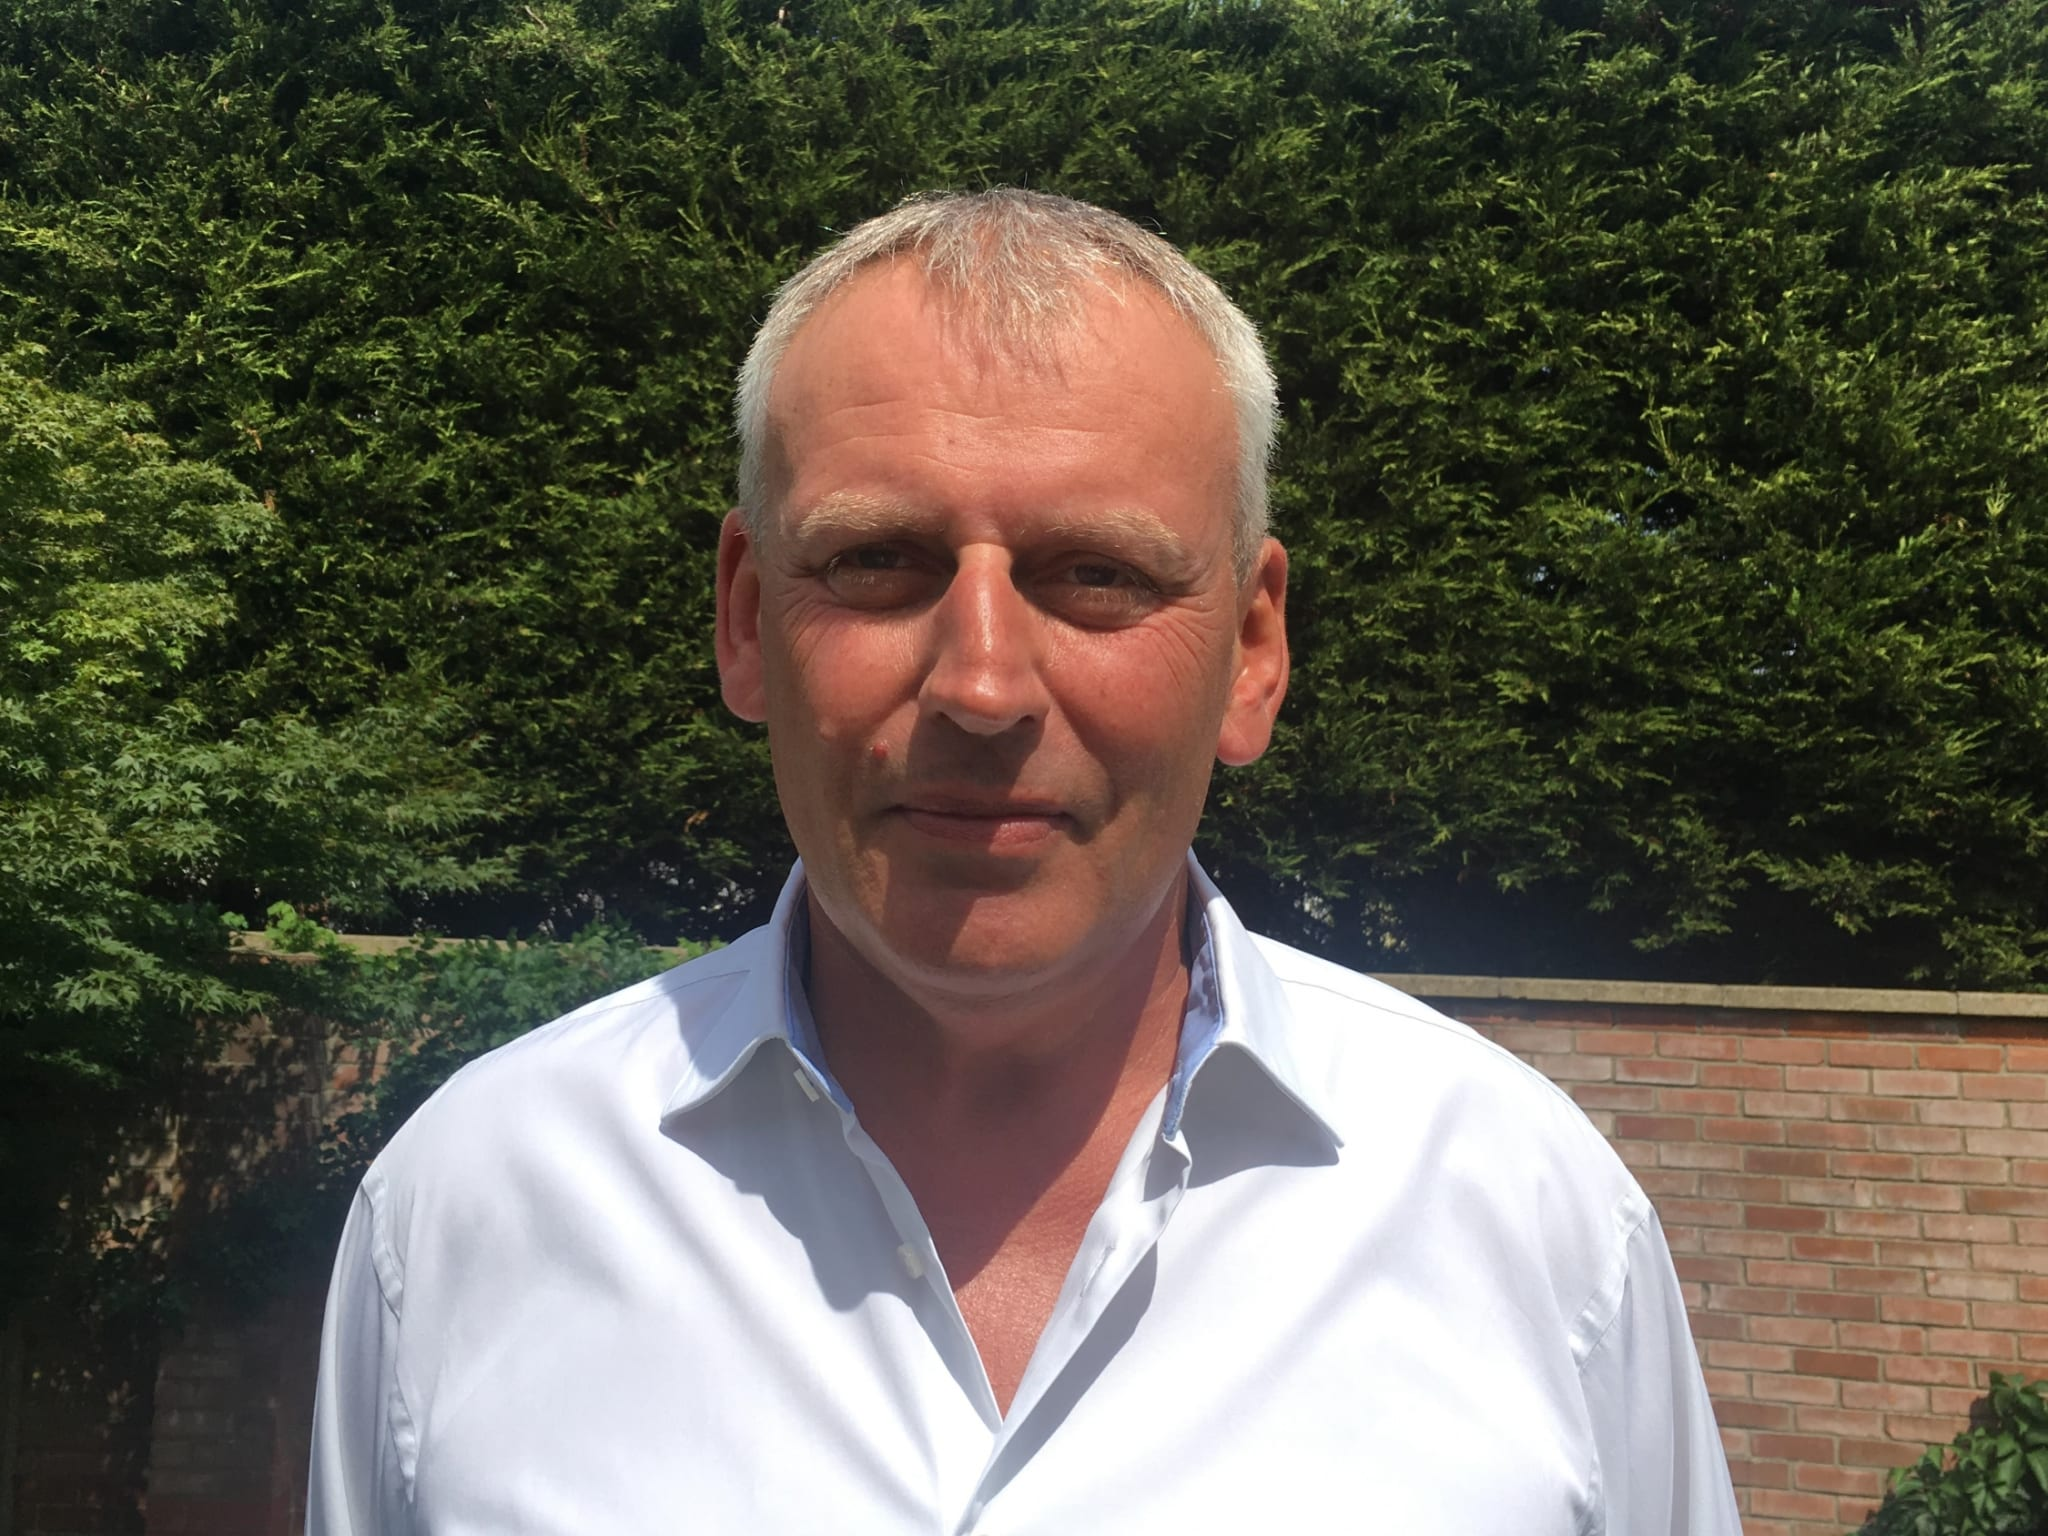 Mick Jary, specification manager